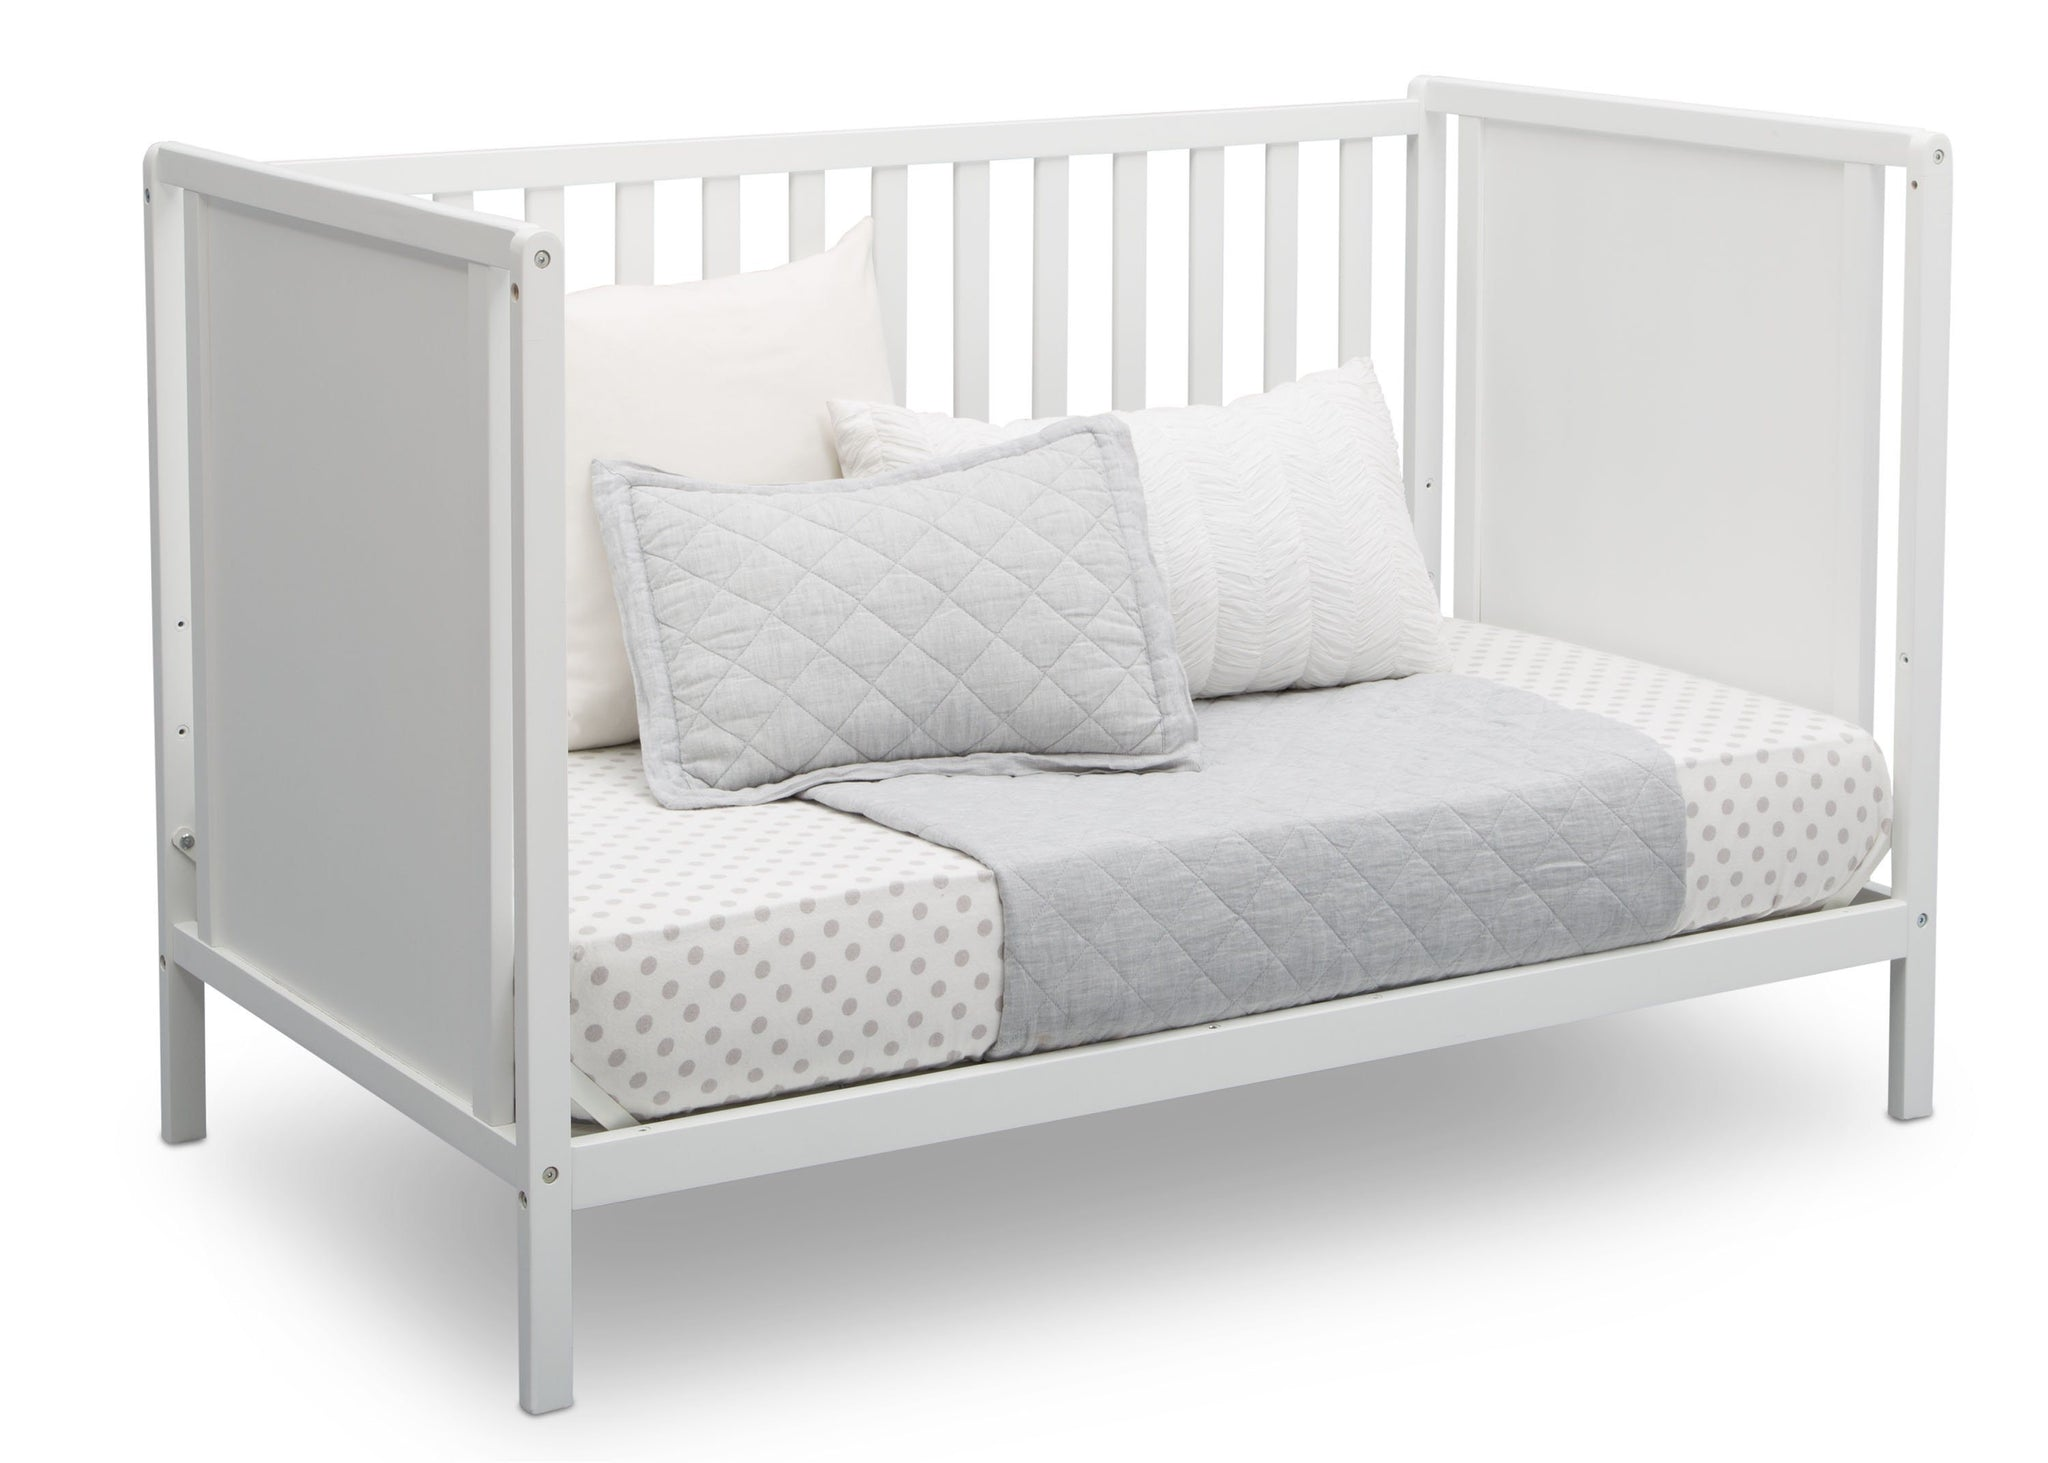 Delta Children Bianca White (130) Heartland Classic 4-in-1 Convertible Crib, Day Bed Angle, c5c